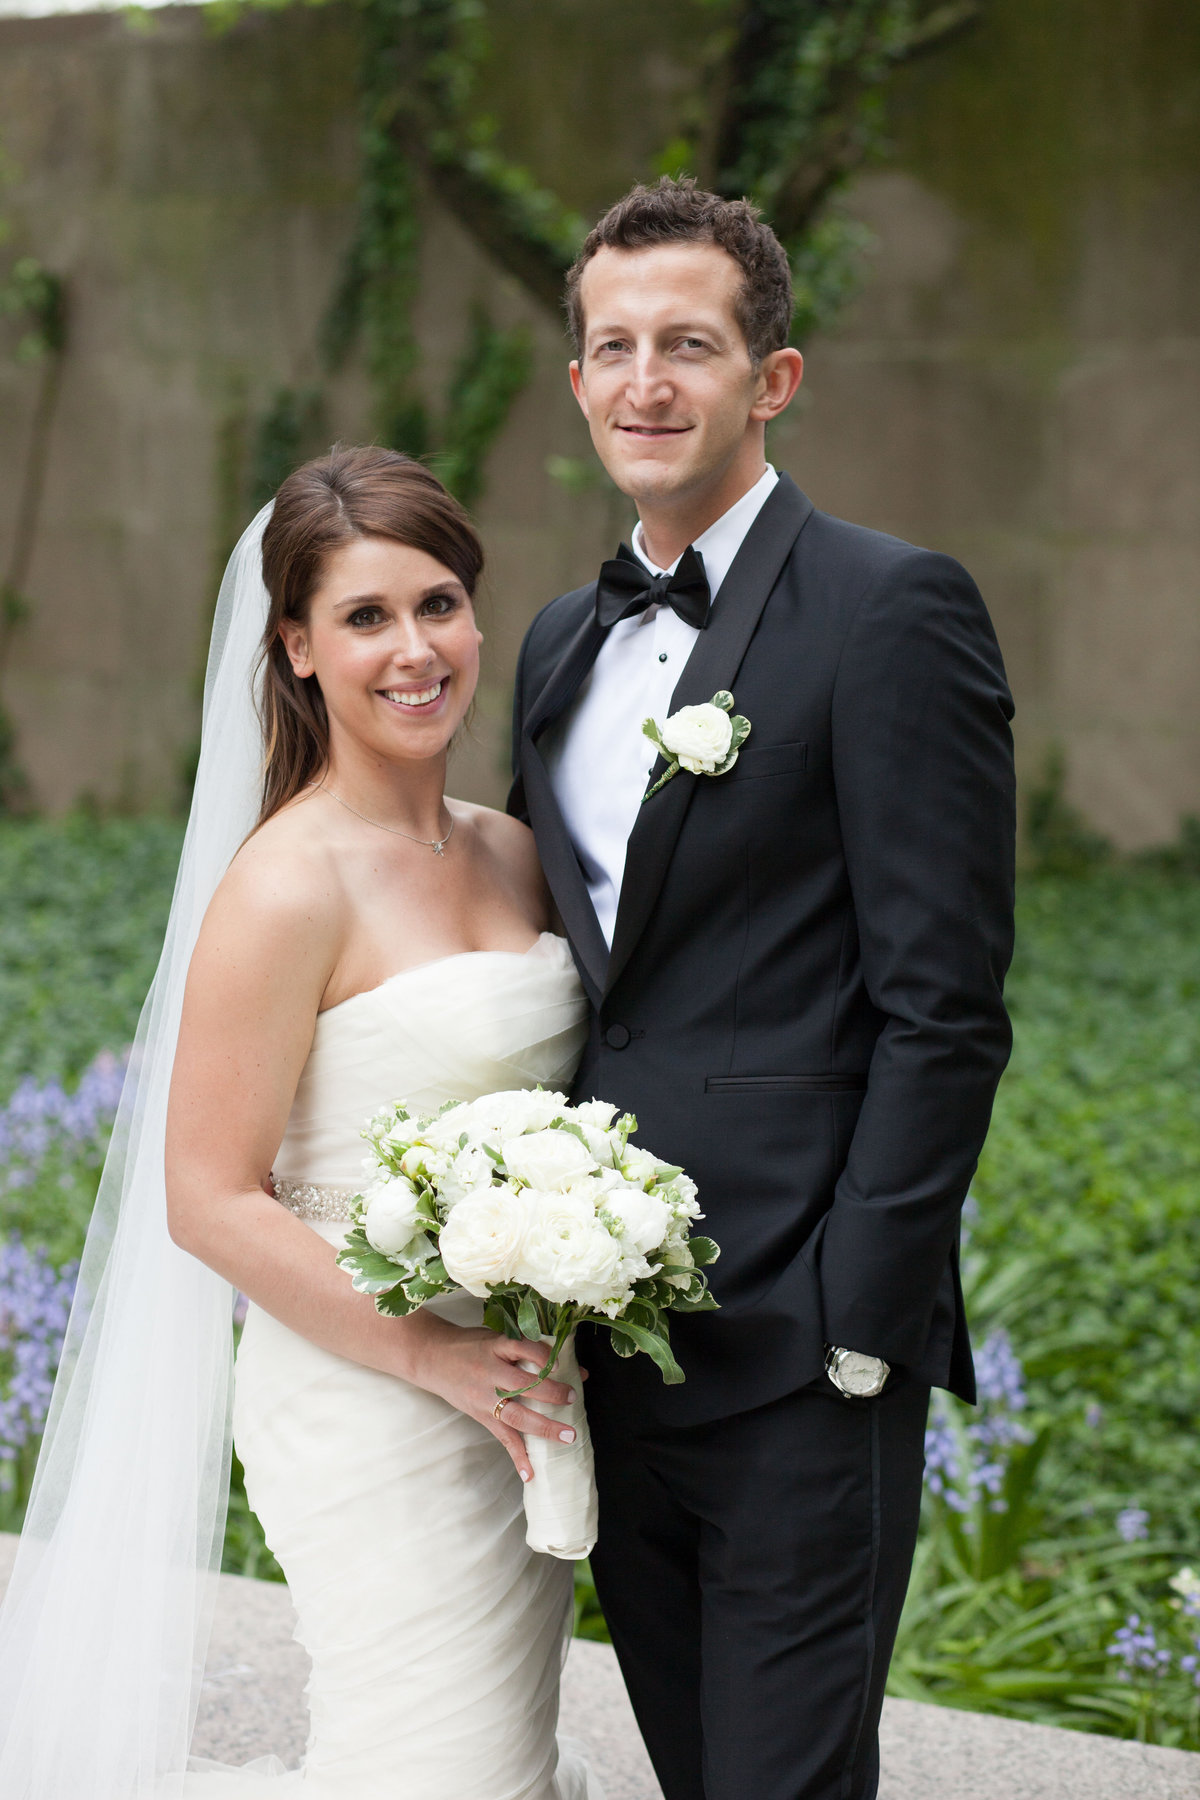 Nicole and Paul Wedding - Natalie Probst Photography 533